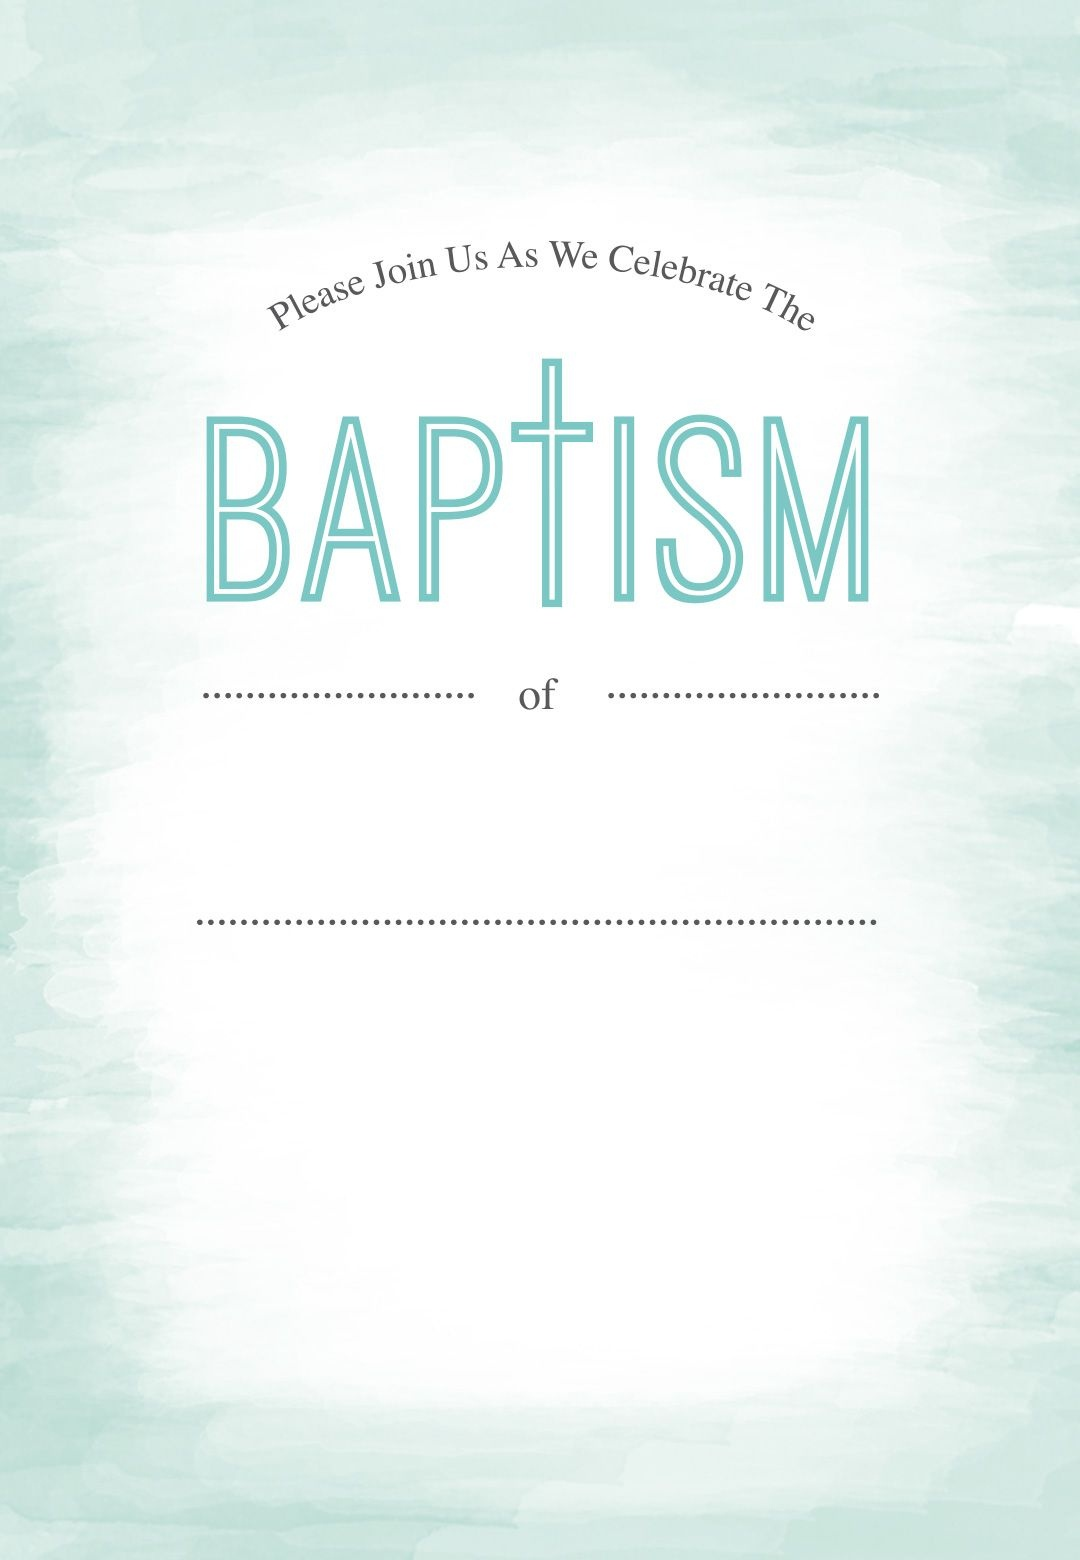 Water - Free Printable Baptism & Christening Invitation Template - Free Printable Baptism Greeting Cards